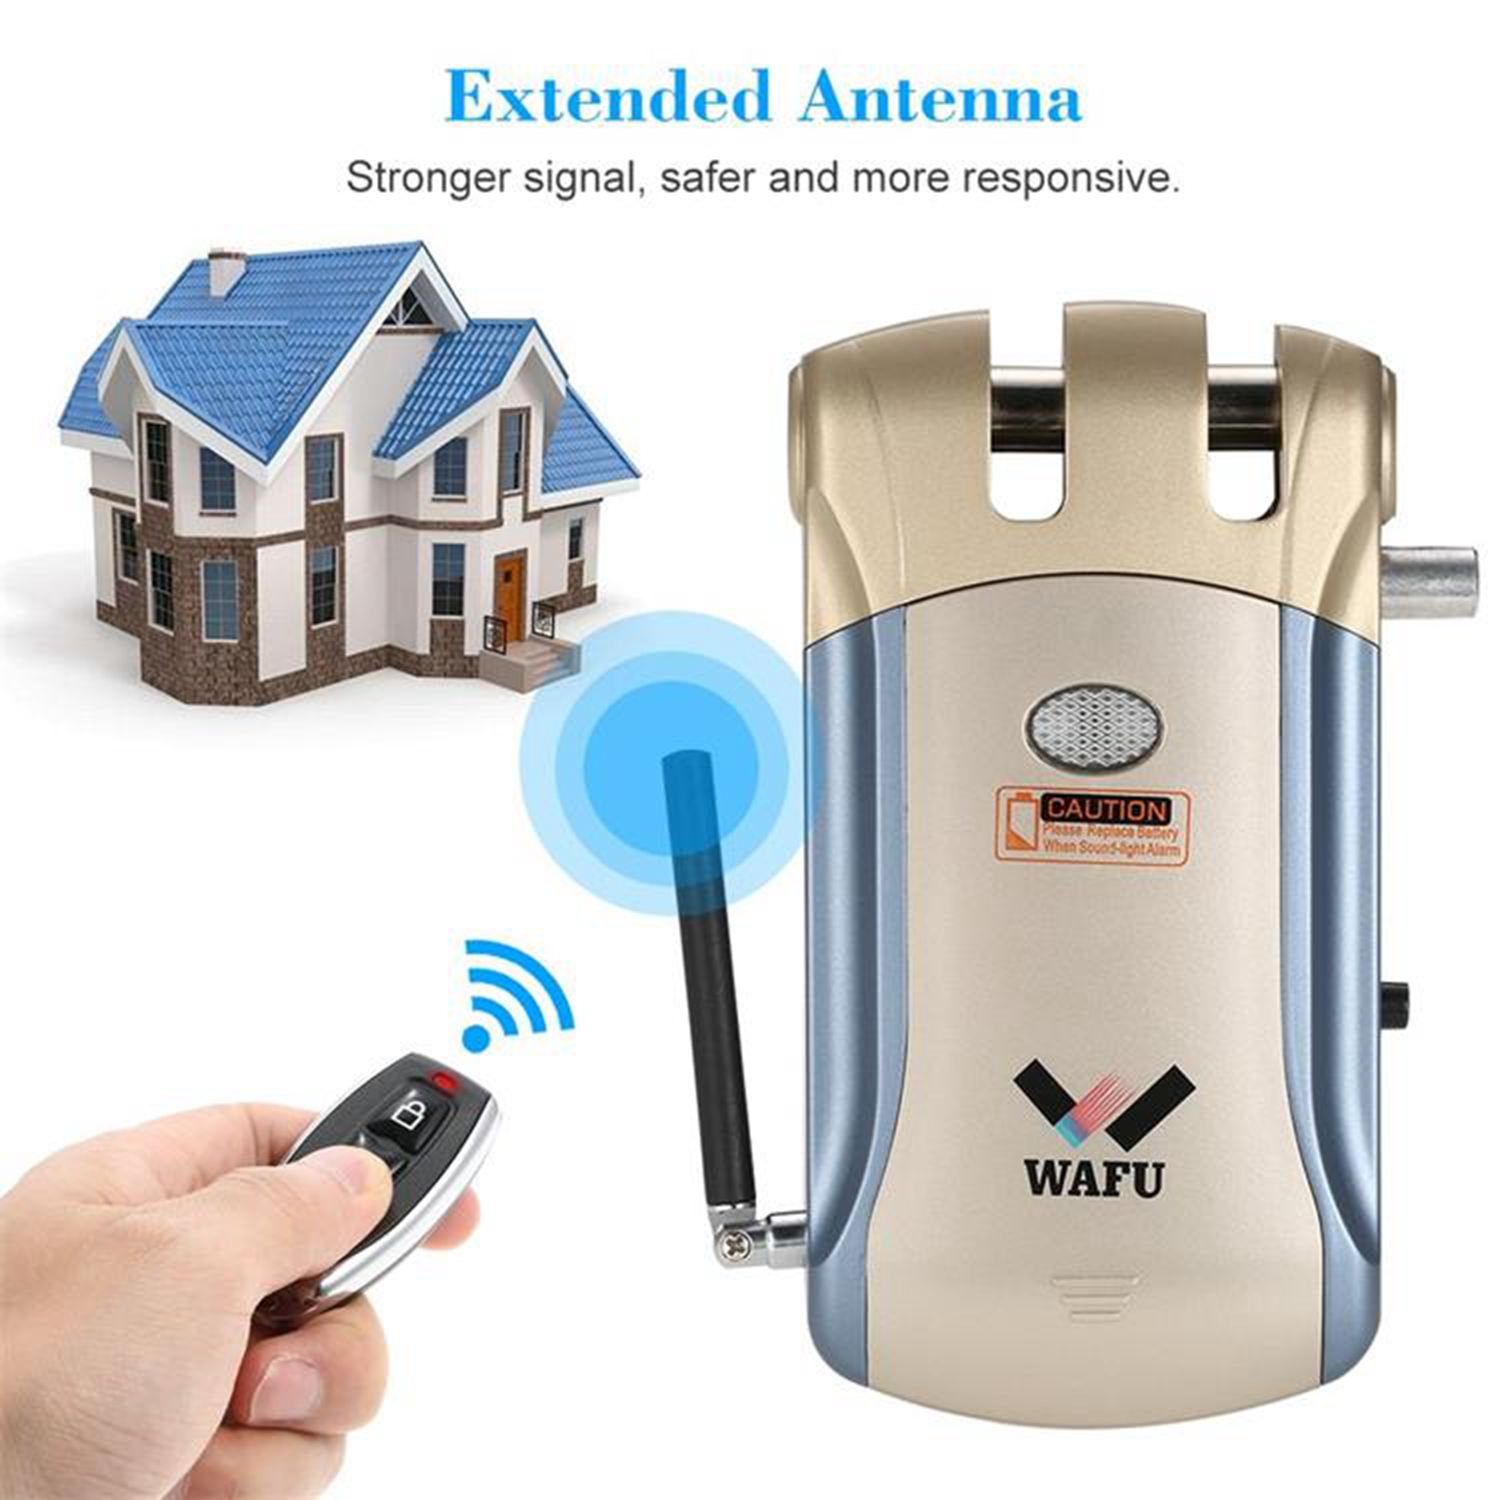 Wafu Wireless Security Invisible Keyless Entry Electronic